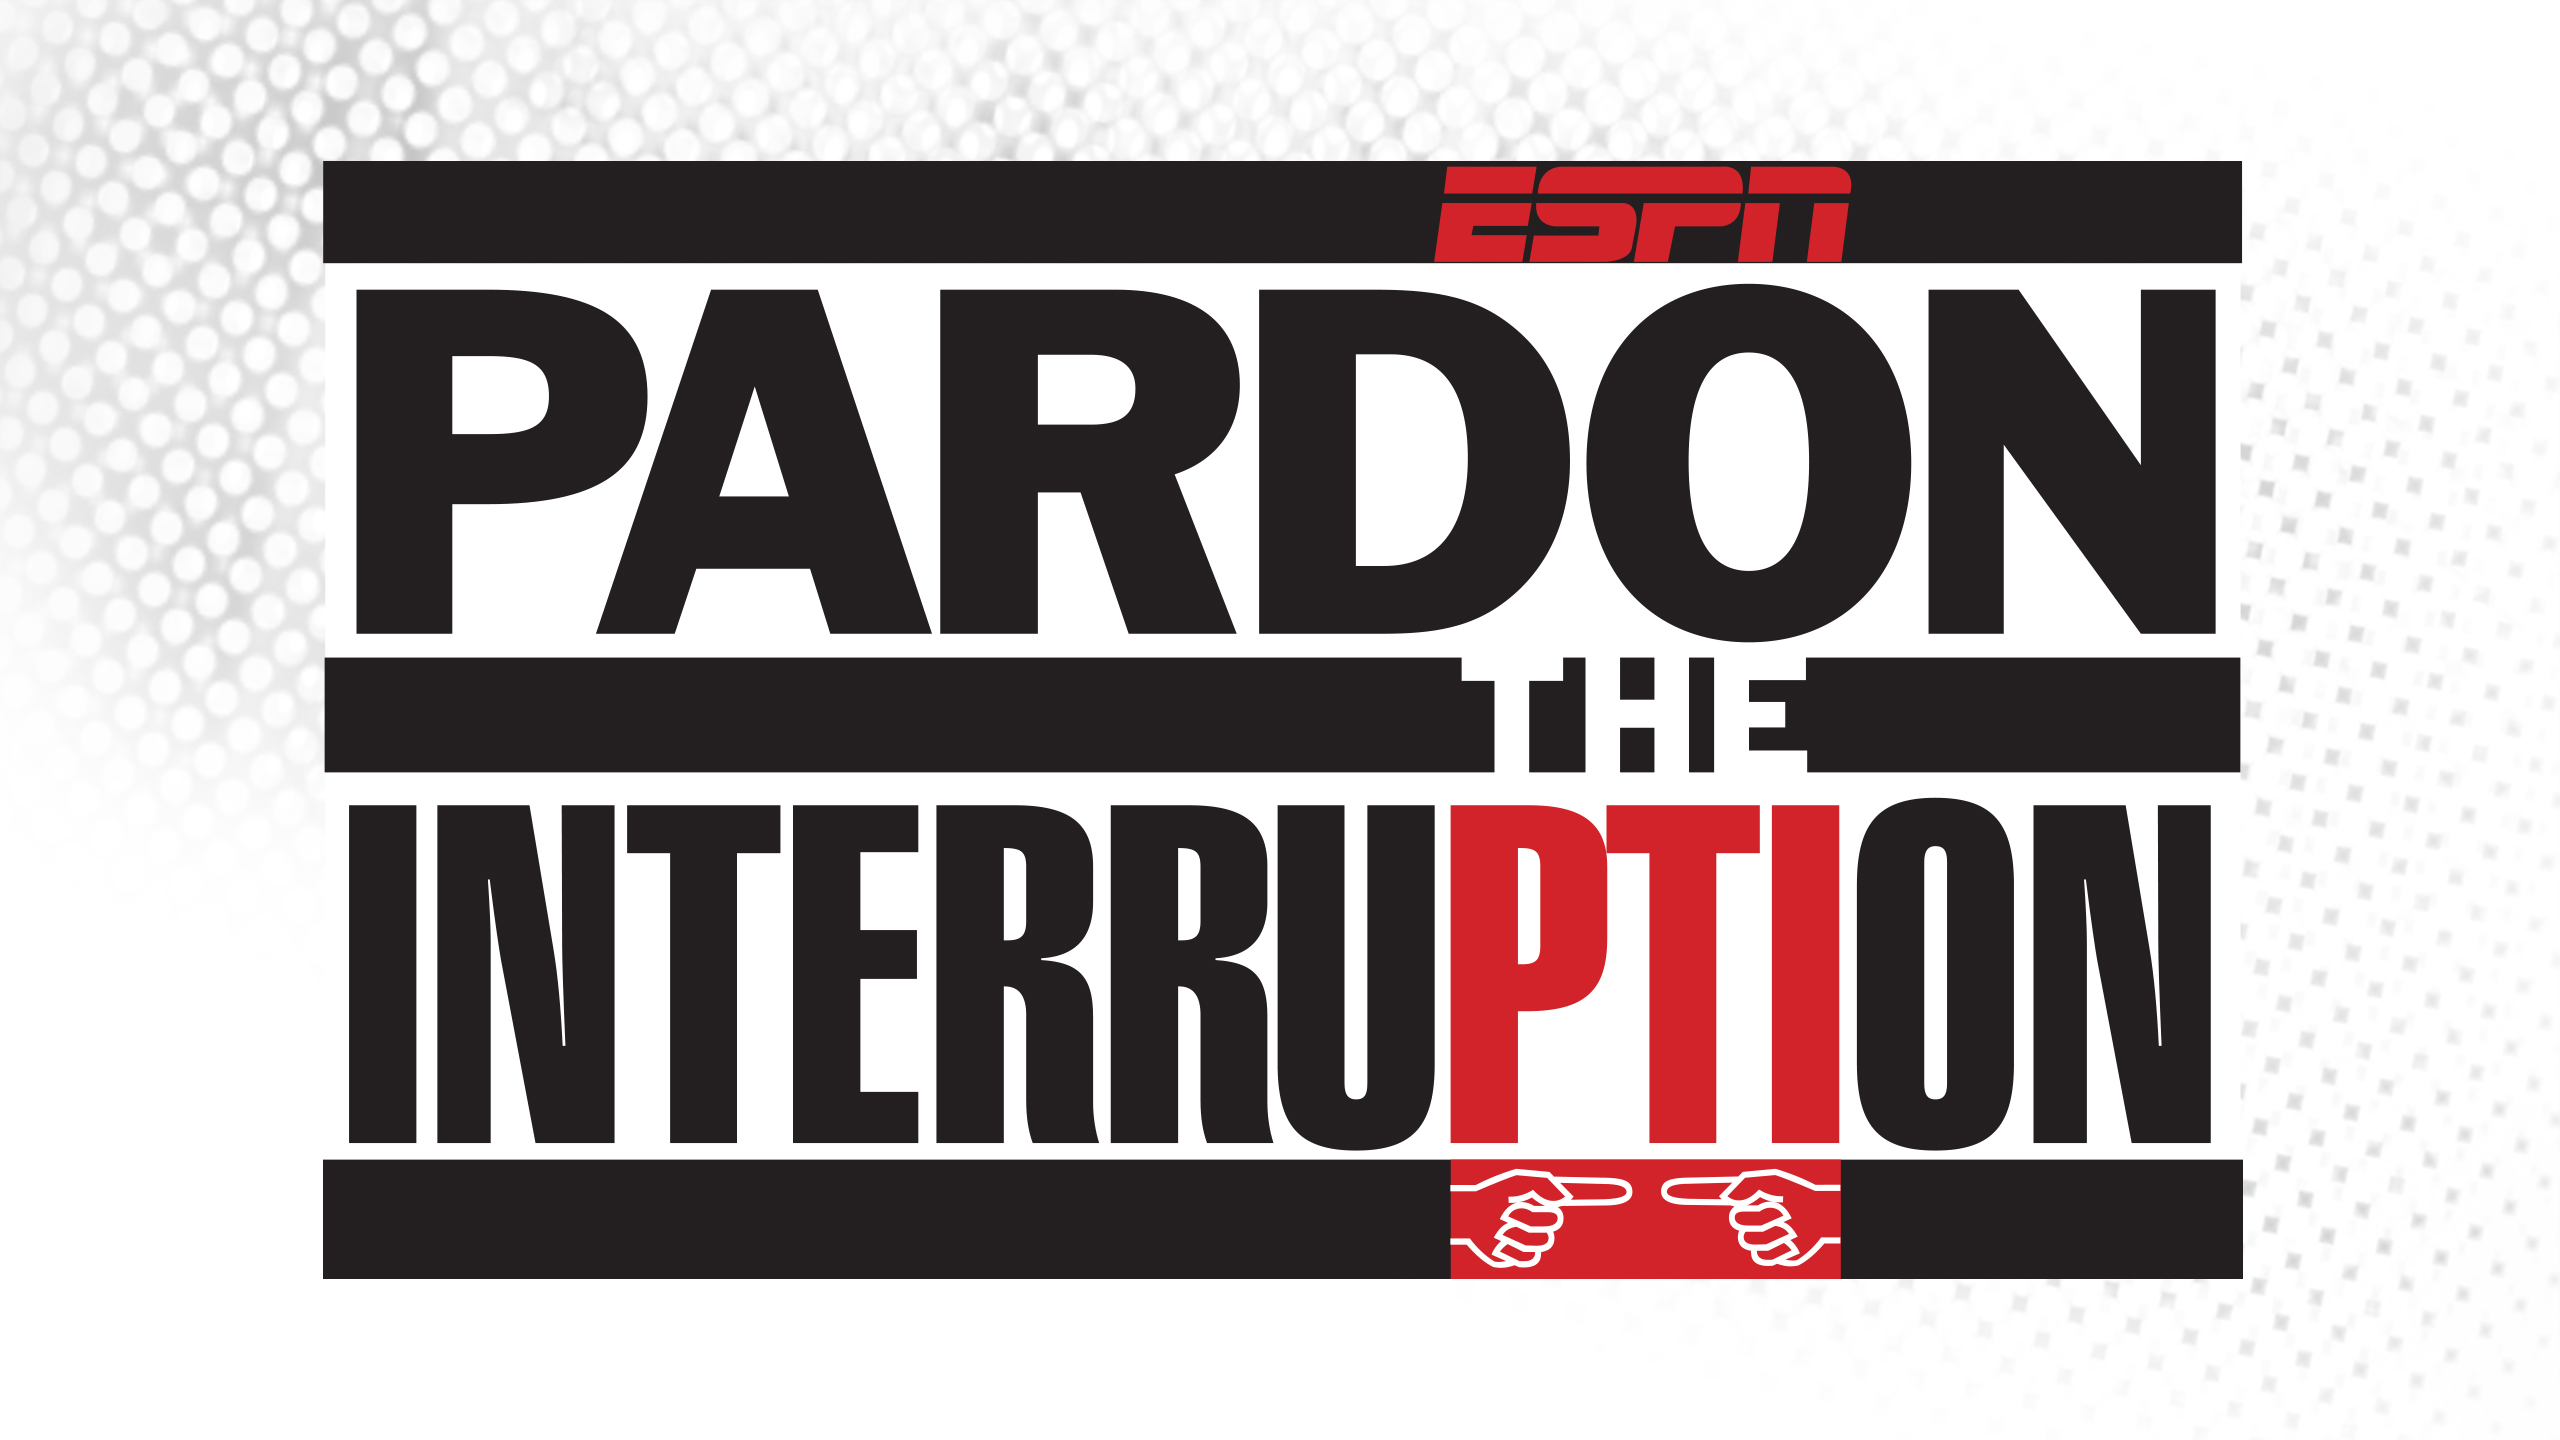 Mon, 11/12 - Pardon The Interruption